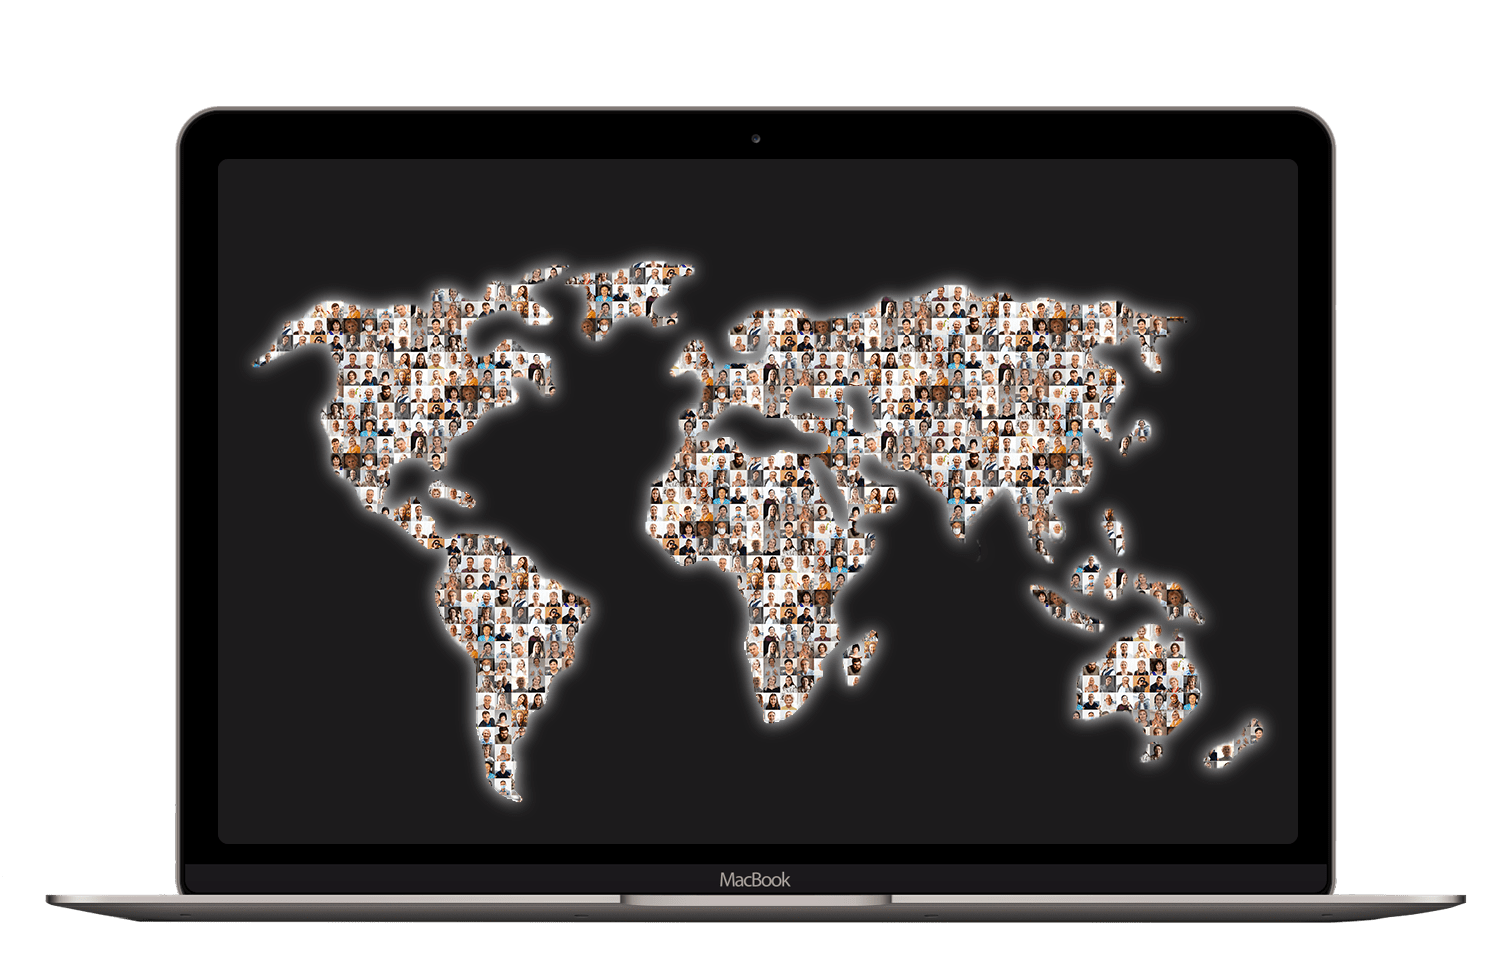 A world map showing how many people around the world we are connecting with our online mentoring platform.